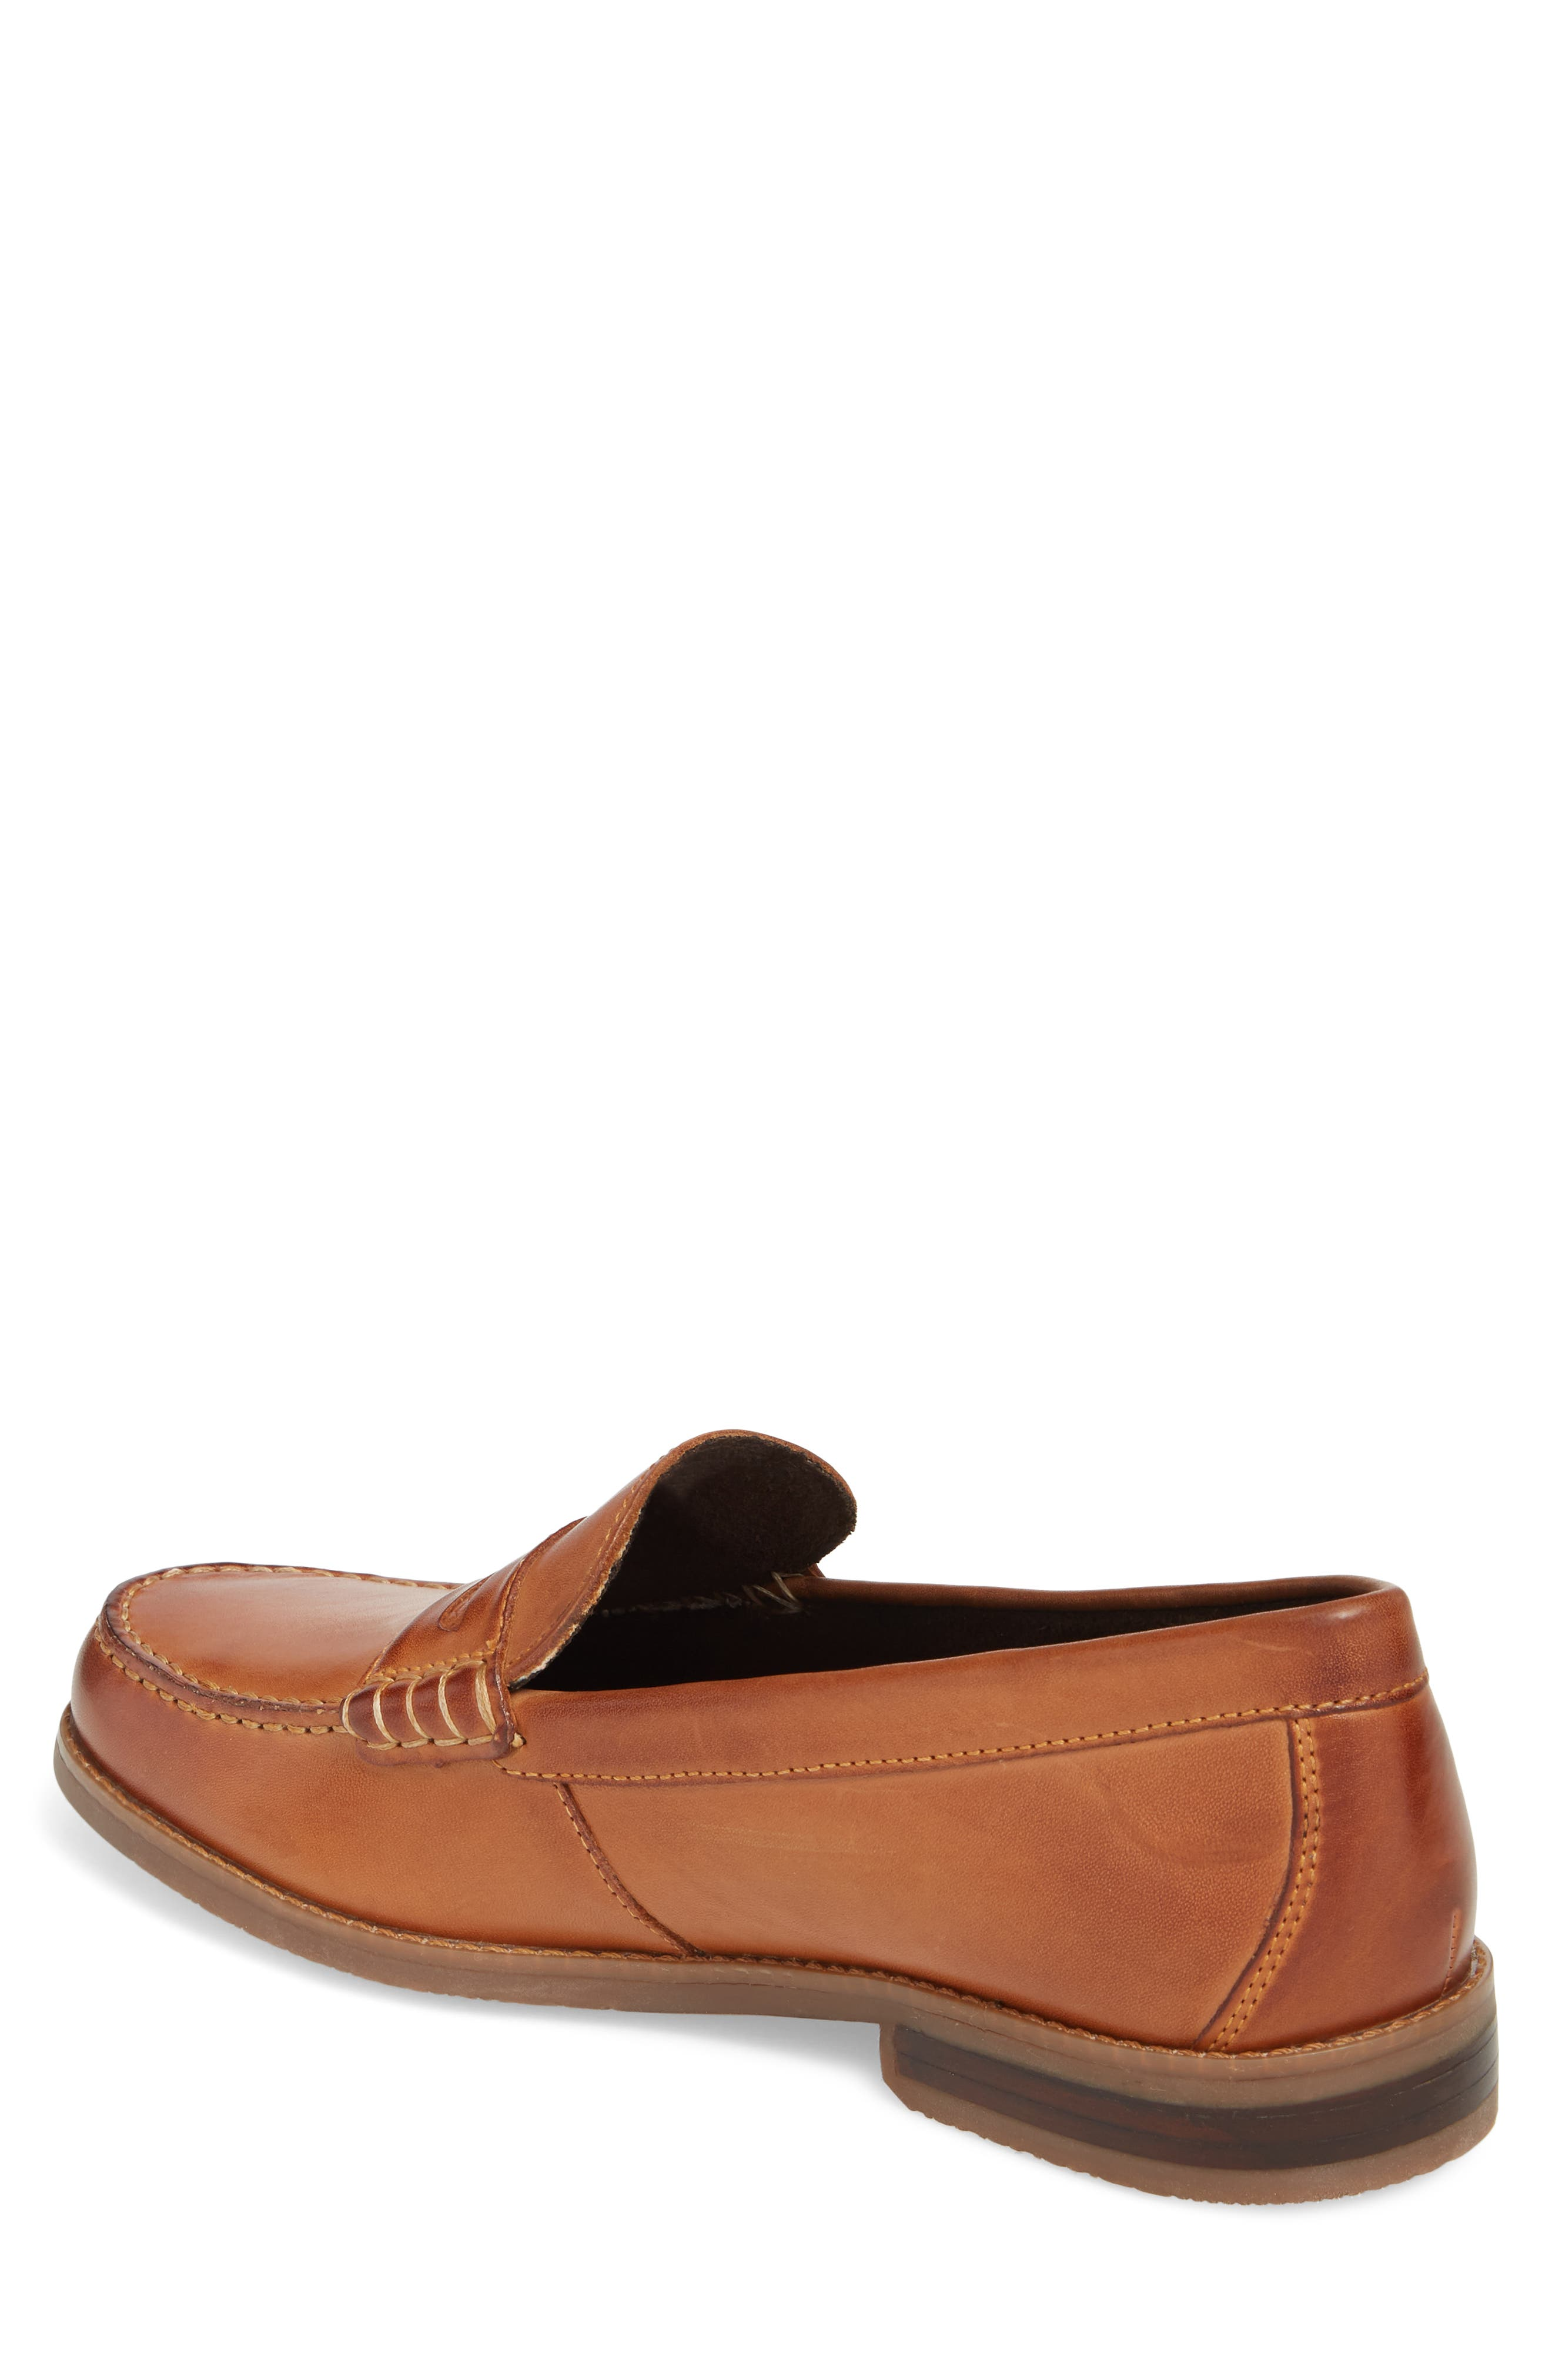 Cayleb Moc Toe Penny Loafer,                             Alternate thumbnail 2, color,                             231